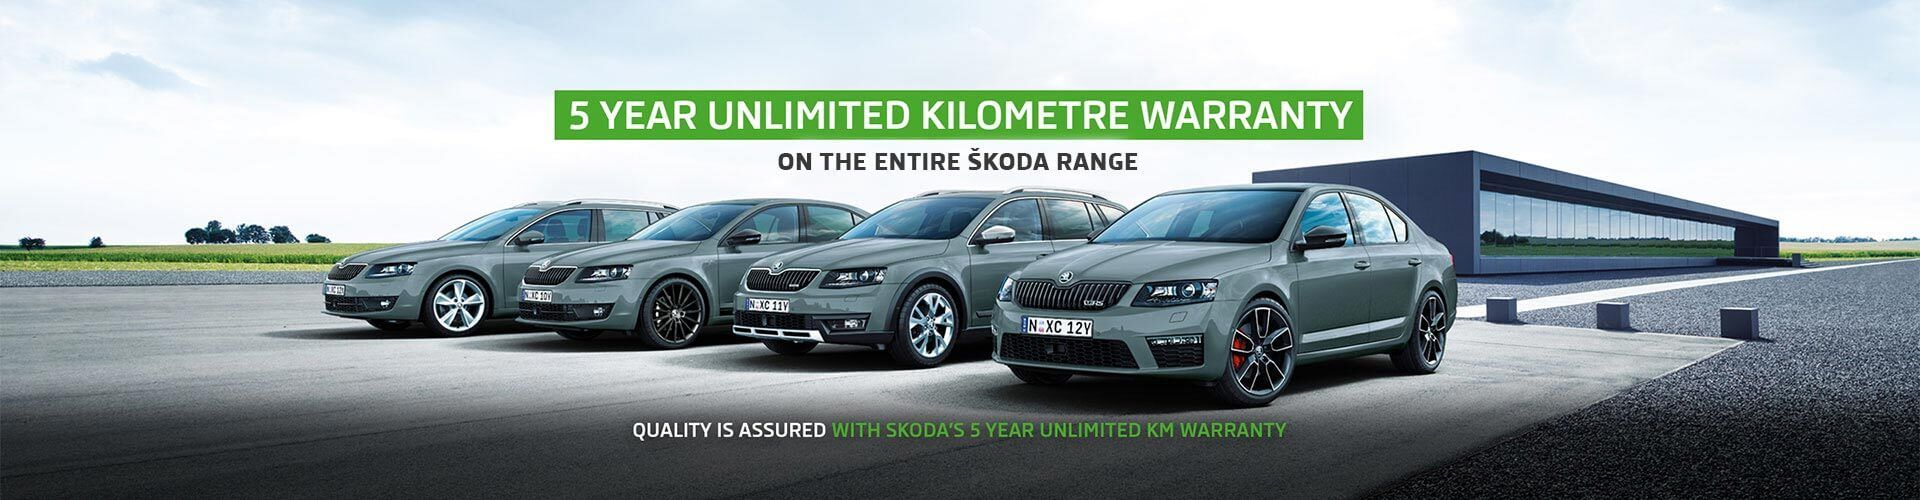 5 year unlimited kilometre warranty